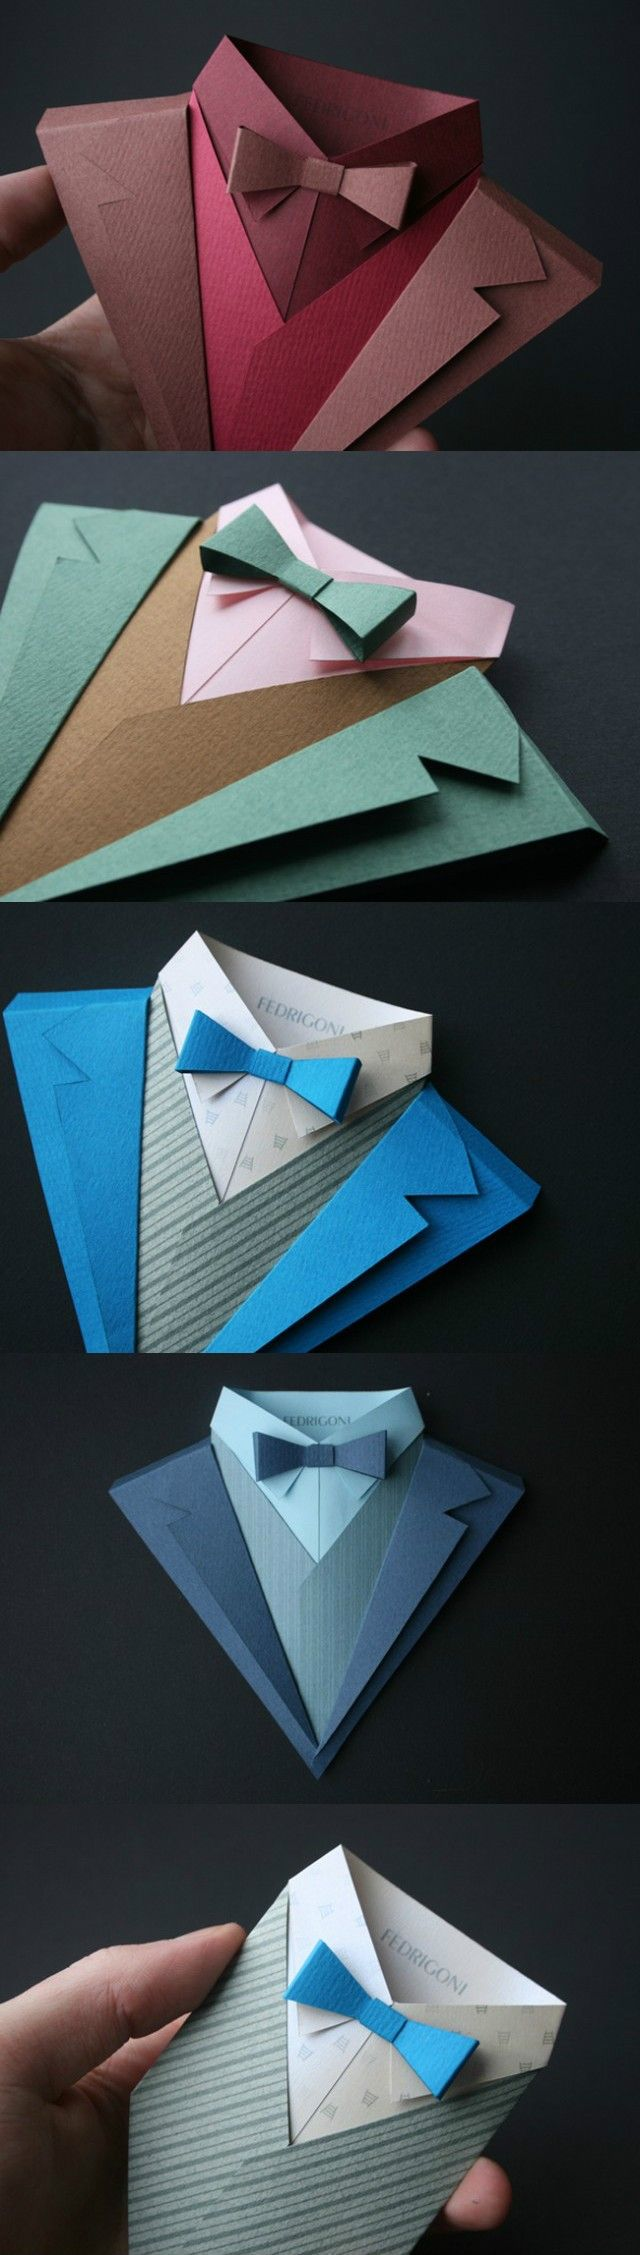 Italian paper ...... _ images from happy pink crystal sharing - heap Sugar